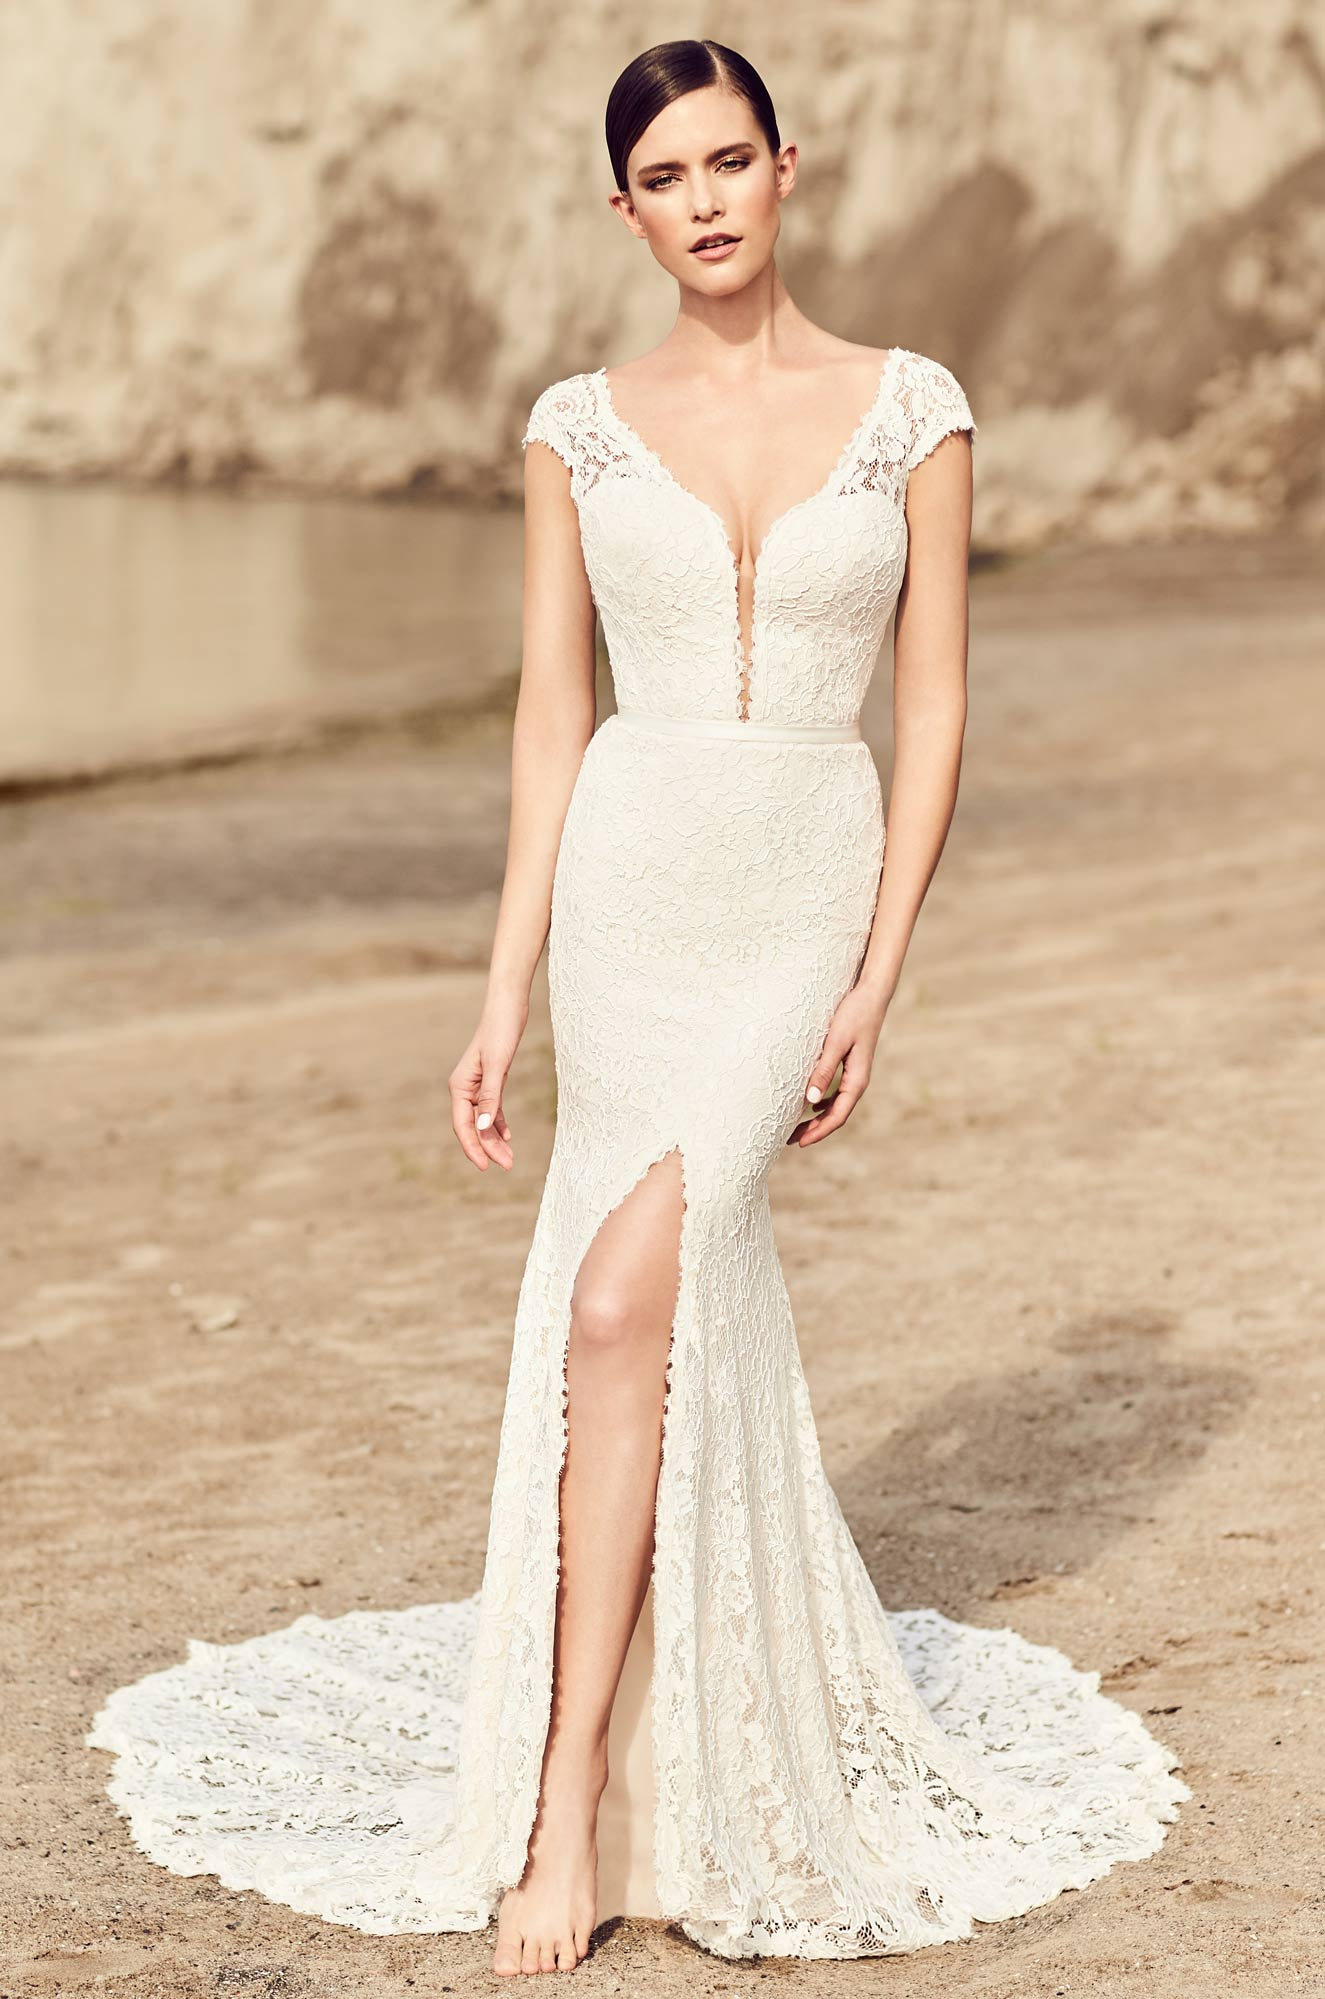 High Slit Lace Wedding Dress - Style #2116 | Mikaella Bridal